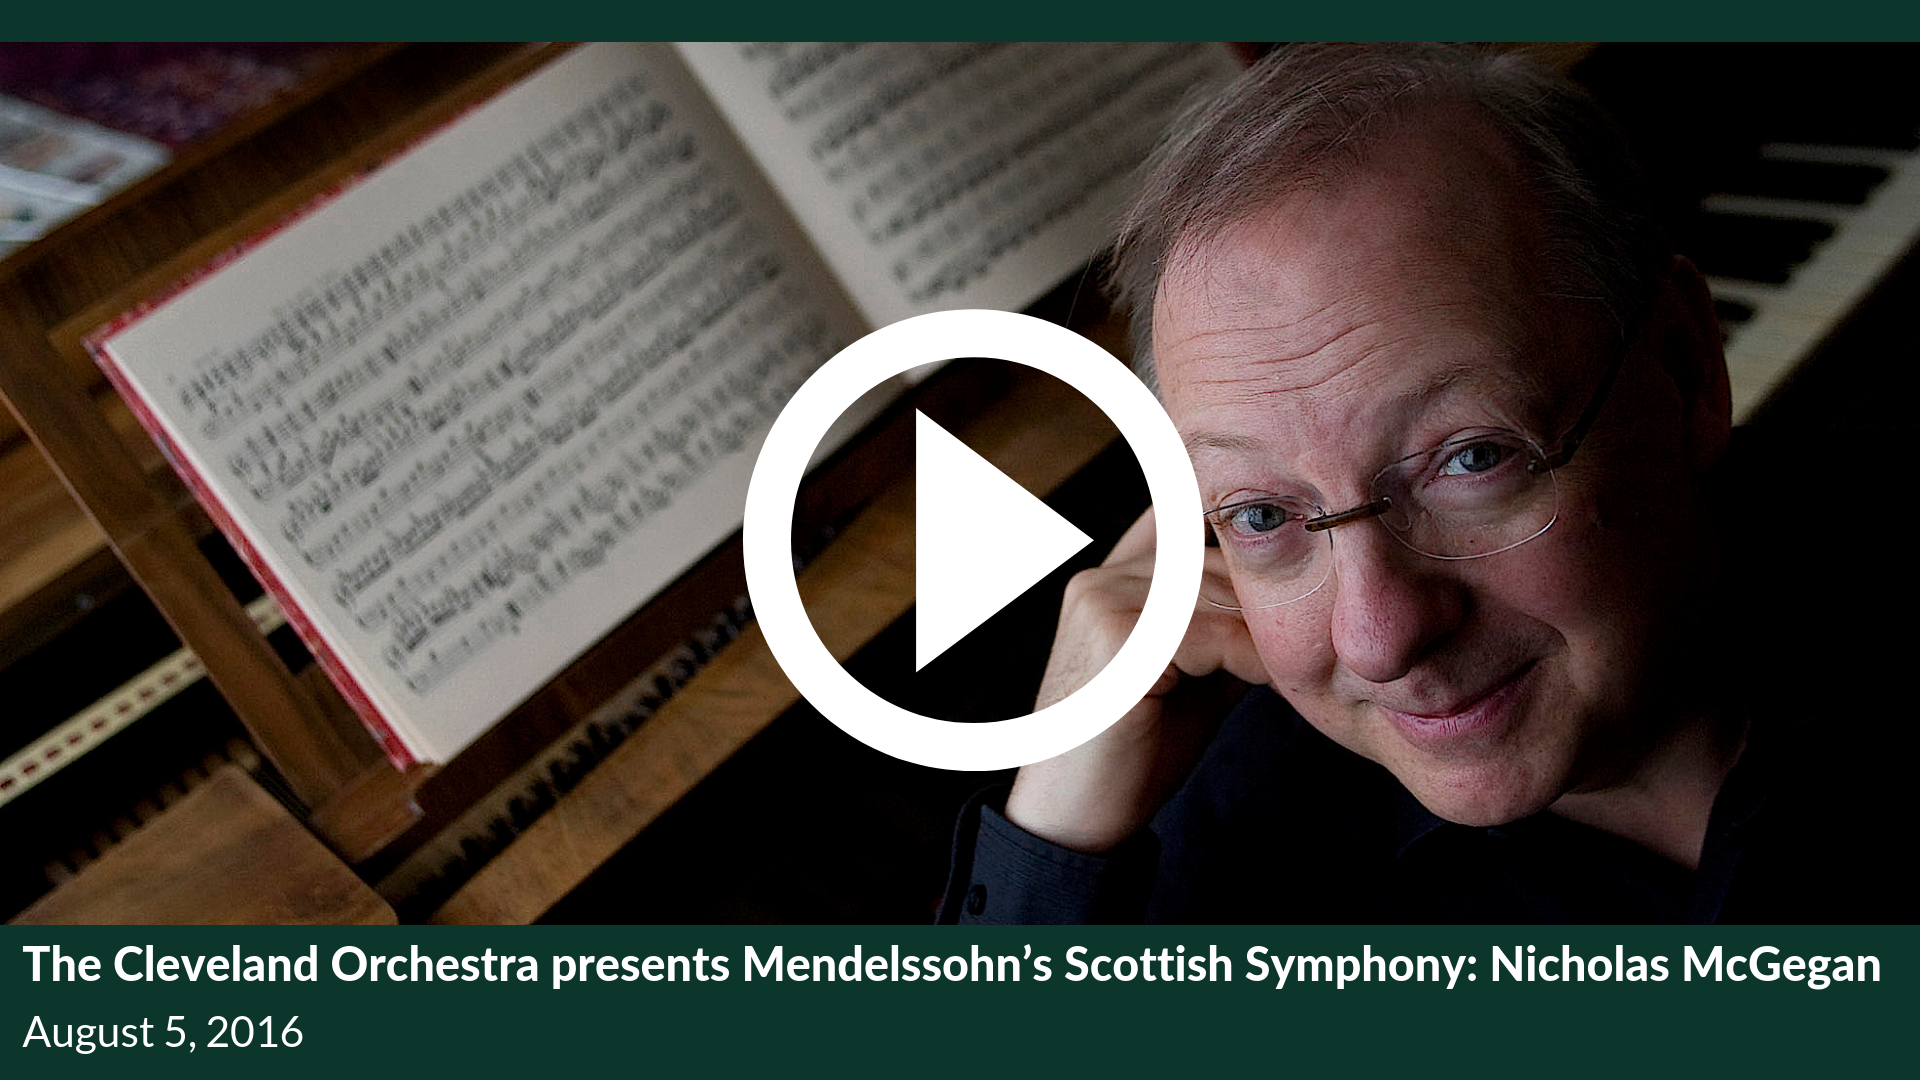 "The Cleveland Orchestra presents Mendelssohn's Scottish Symphony: Nicholas McGegan"" is locked	 The Cleveland Orchestra presents Mendelssohn's Scottish Symphony: Nicholas McGegan"